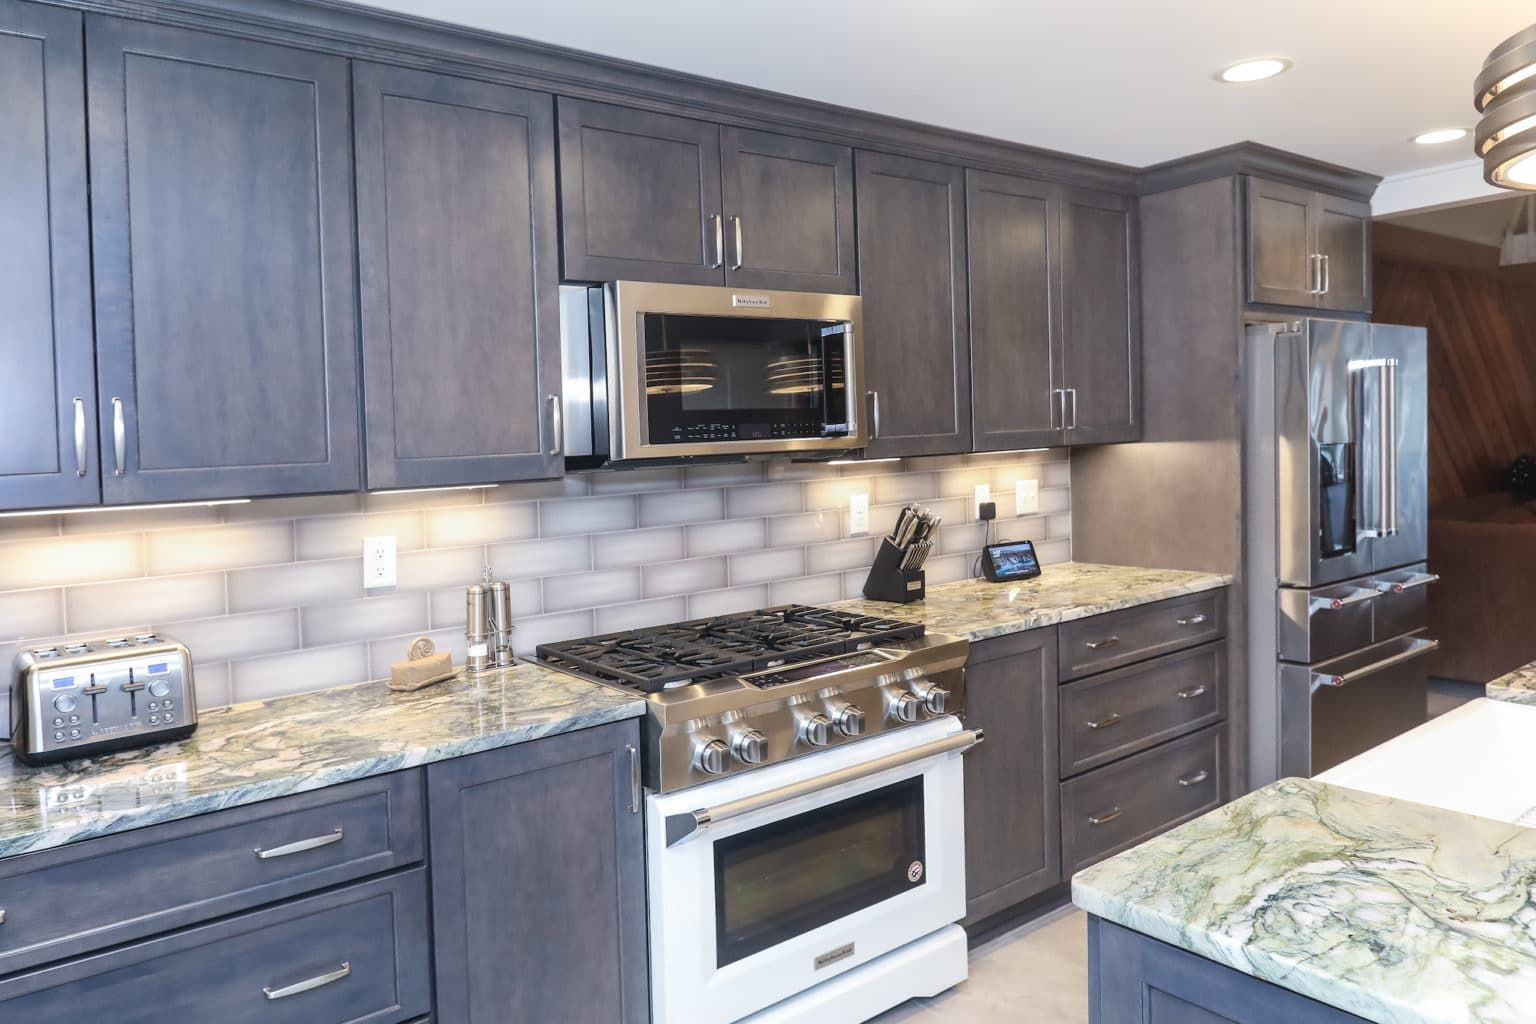 2020 Design What S Cooking In Kitchens In 2020 Kitchen Design Kitchen Design Trends Design Remodel